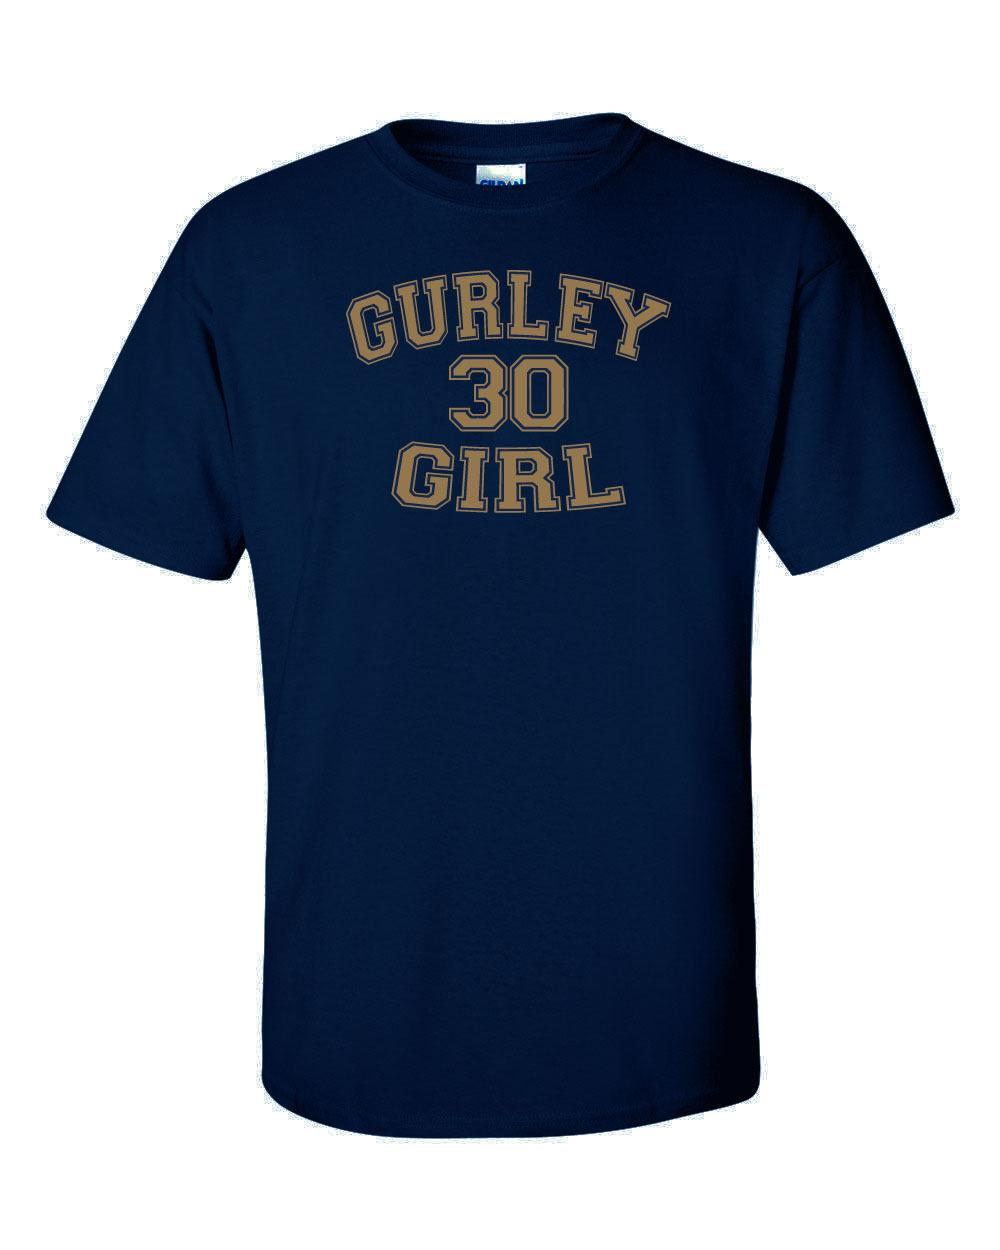 finest selection 822b0 0377c Todd Gurley Gurley Girl St. Louis Rams T-shirt Jersey S-5XL